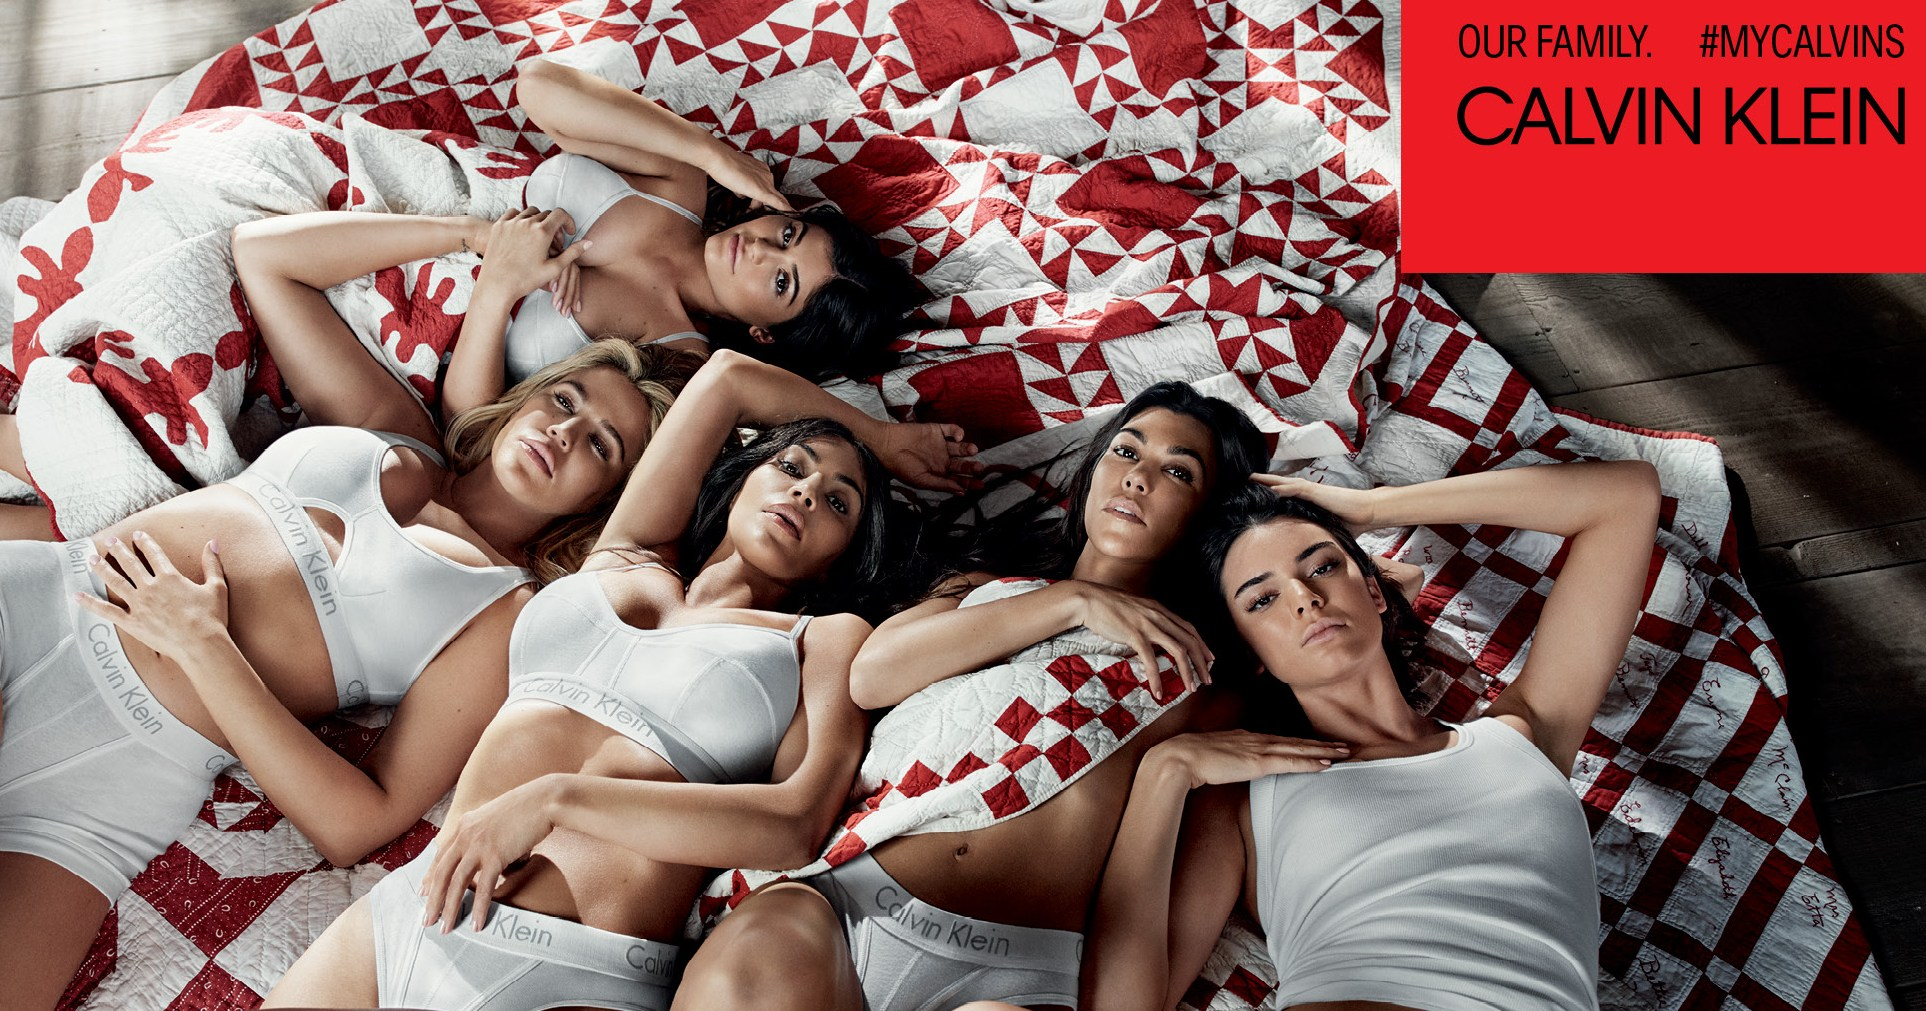 Kylie and Kendall Jenner Team Up with Kourtney, Kim and Khloe Kardashian For a New Calvin Klein Campaign — and It's Major